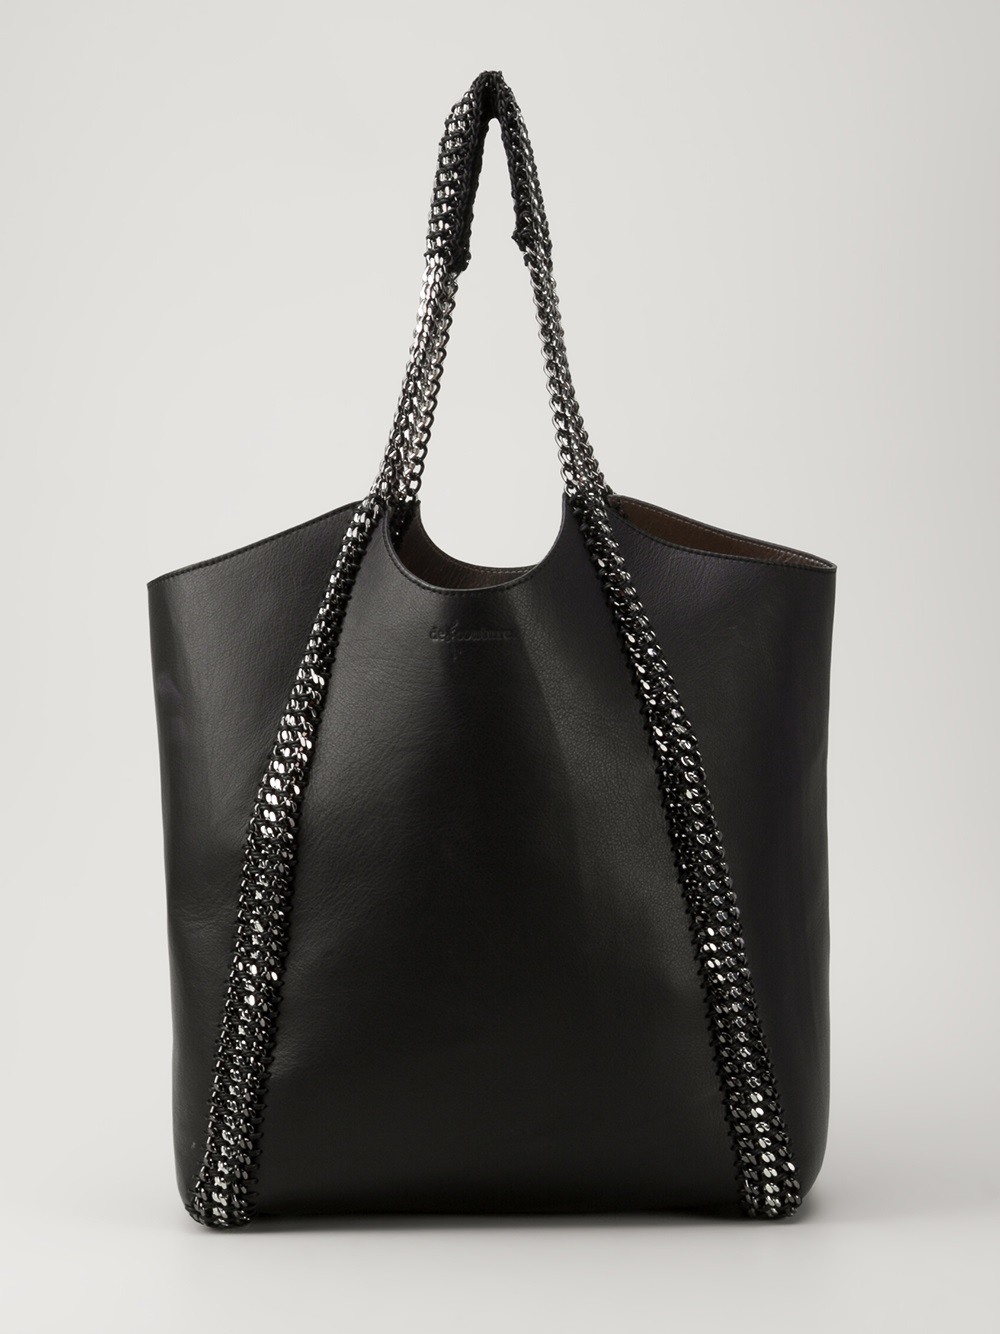 lyst de couture chain link tote bag in black. Black Bedroom Furniture Sets. Home Design Ideas